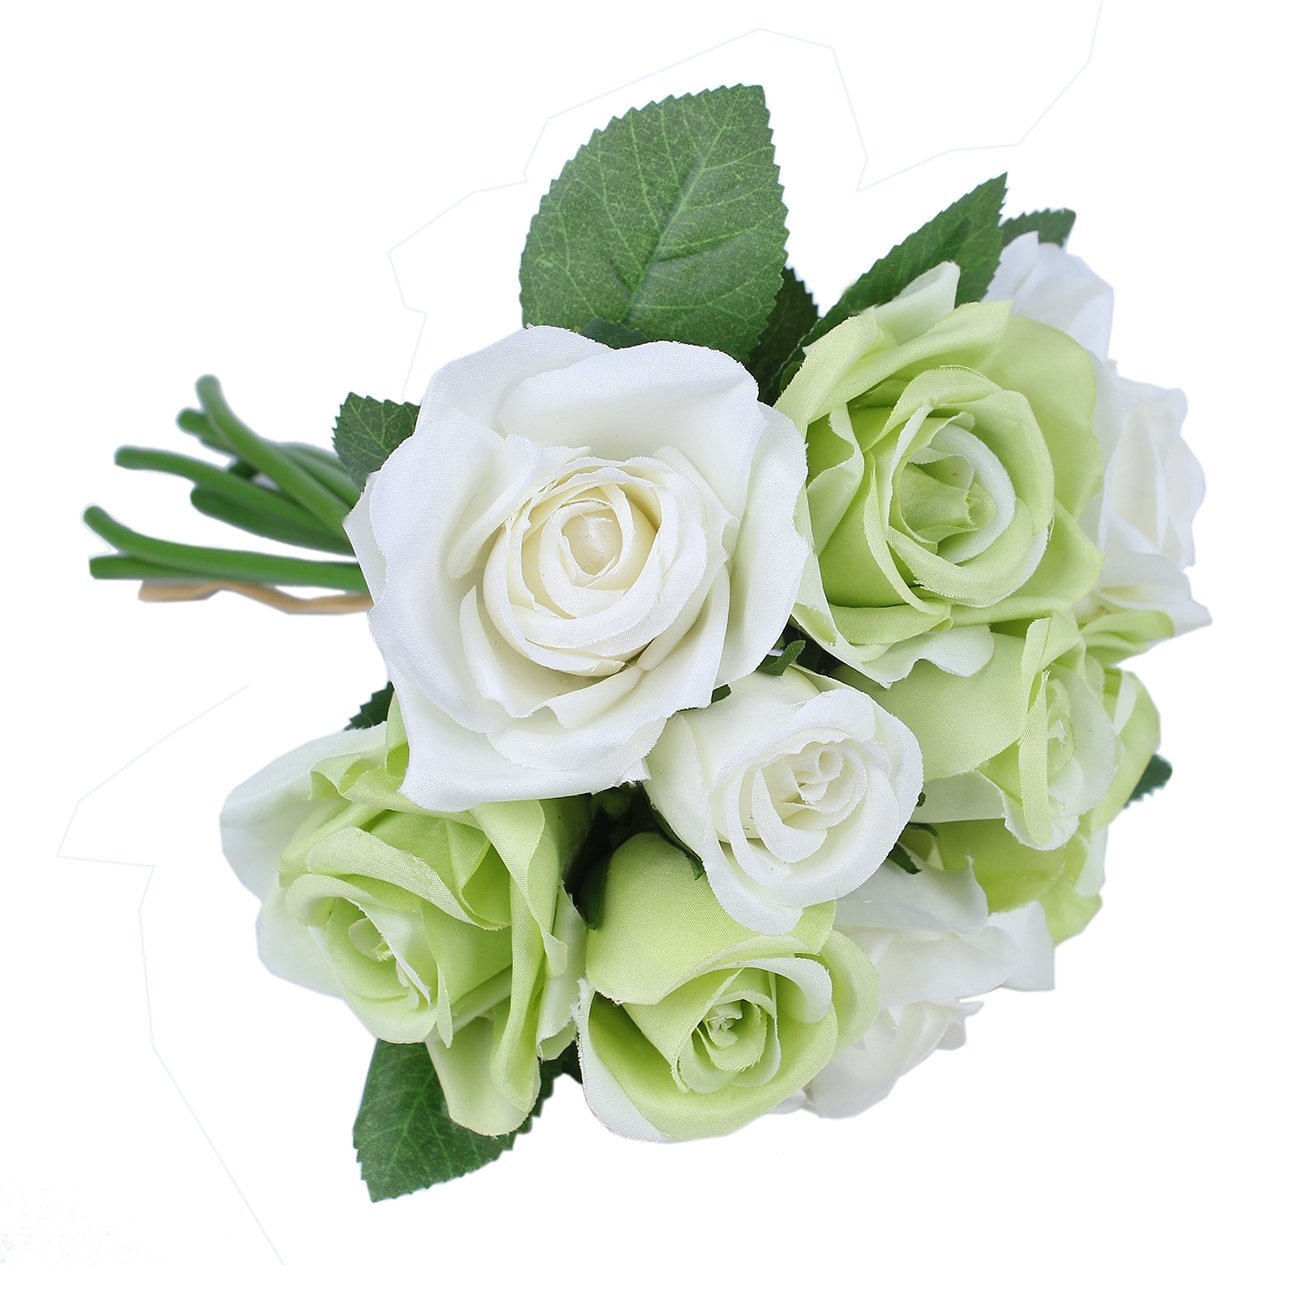 Artificial Flowers 9 Heads Rose Bouquets Fake Flower For Wedding